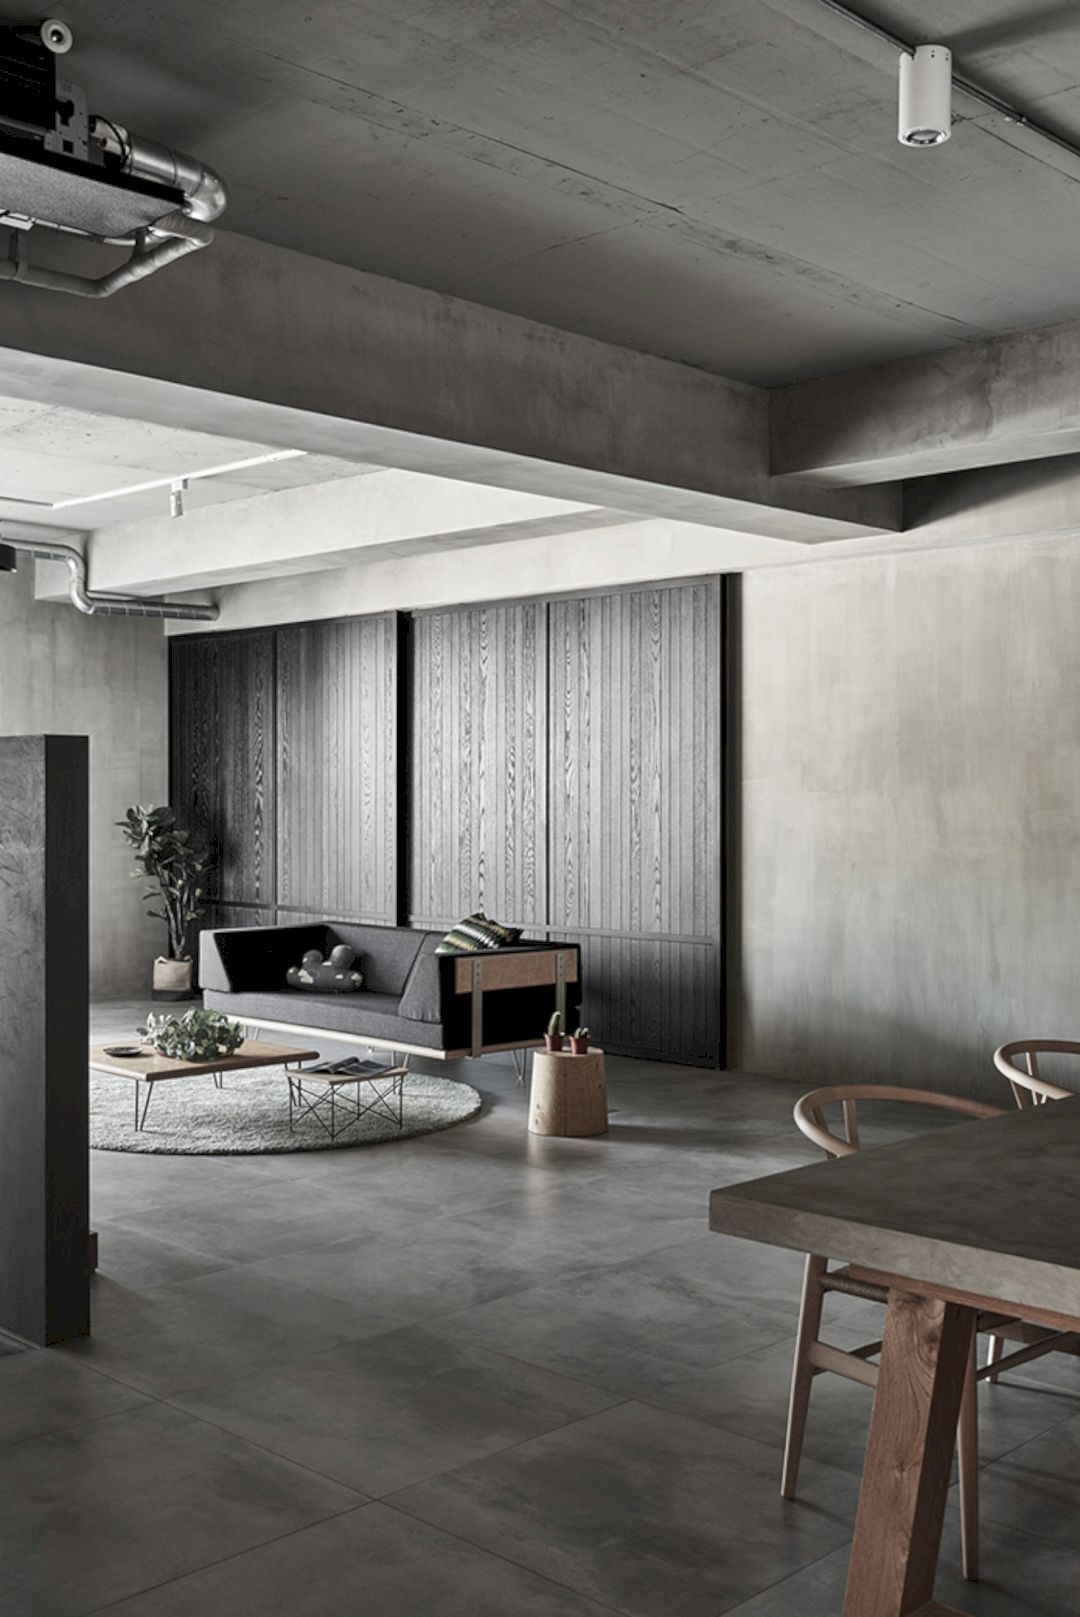 Gentle Heart of Steel: A Family Residence with Industrial Interior and Colorless Gray Style